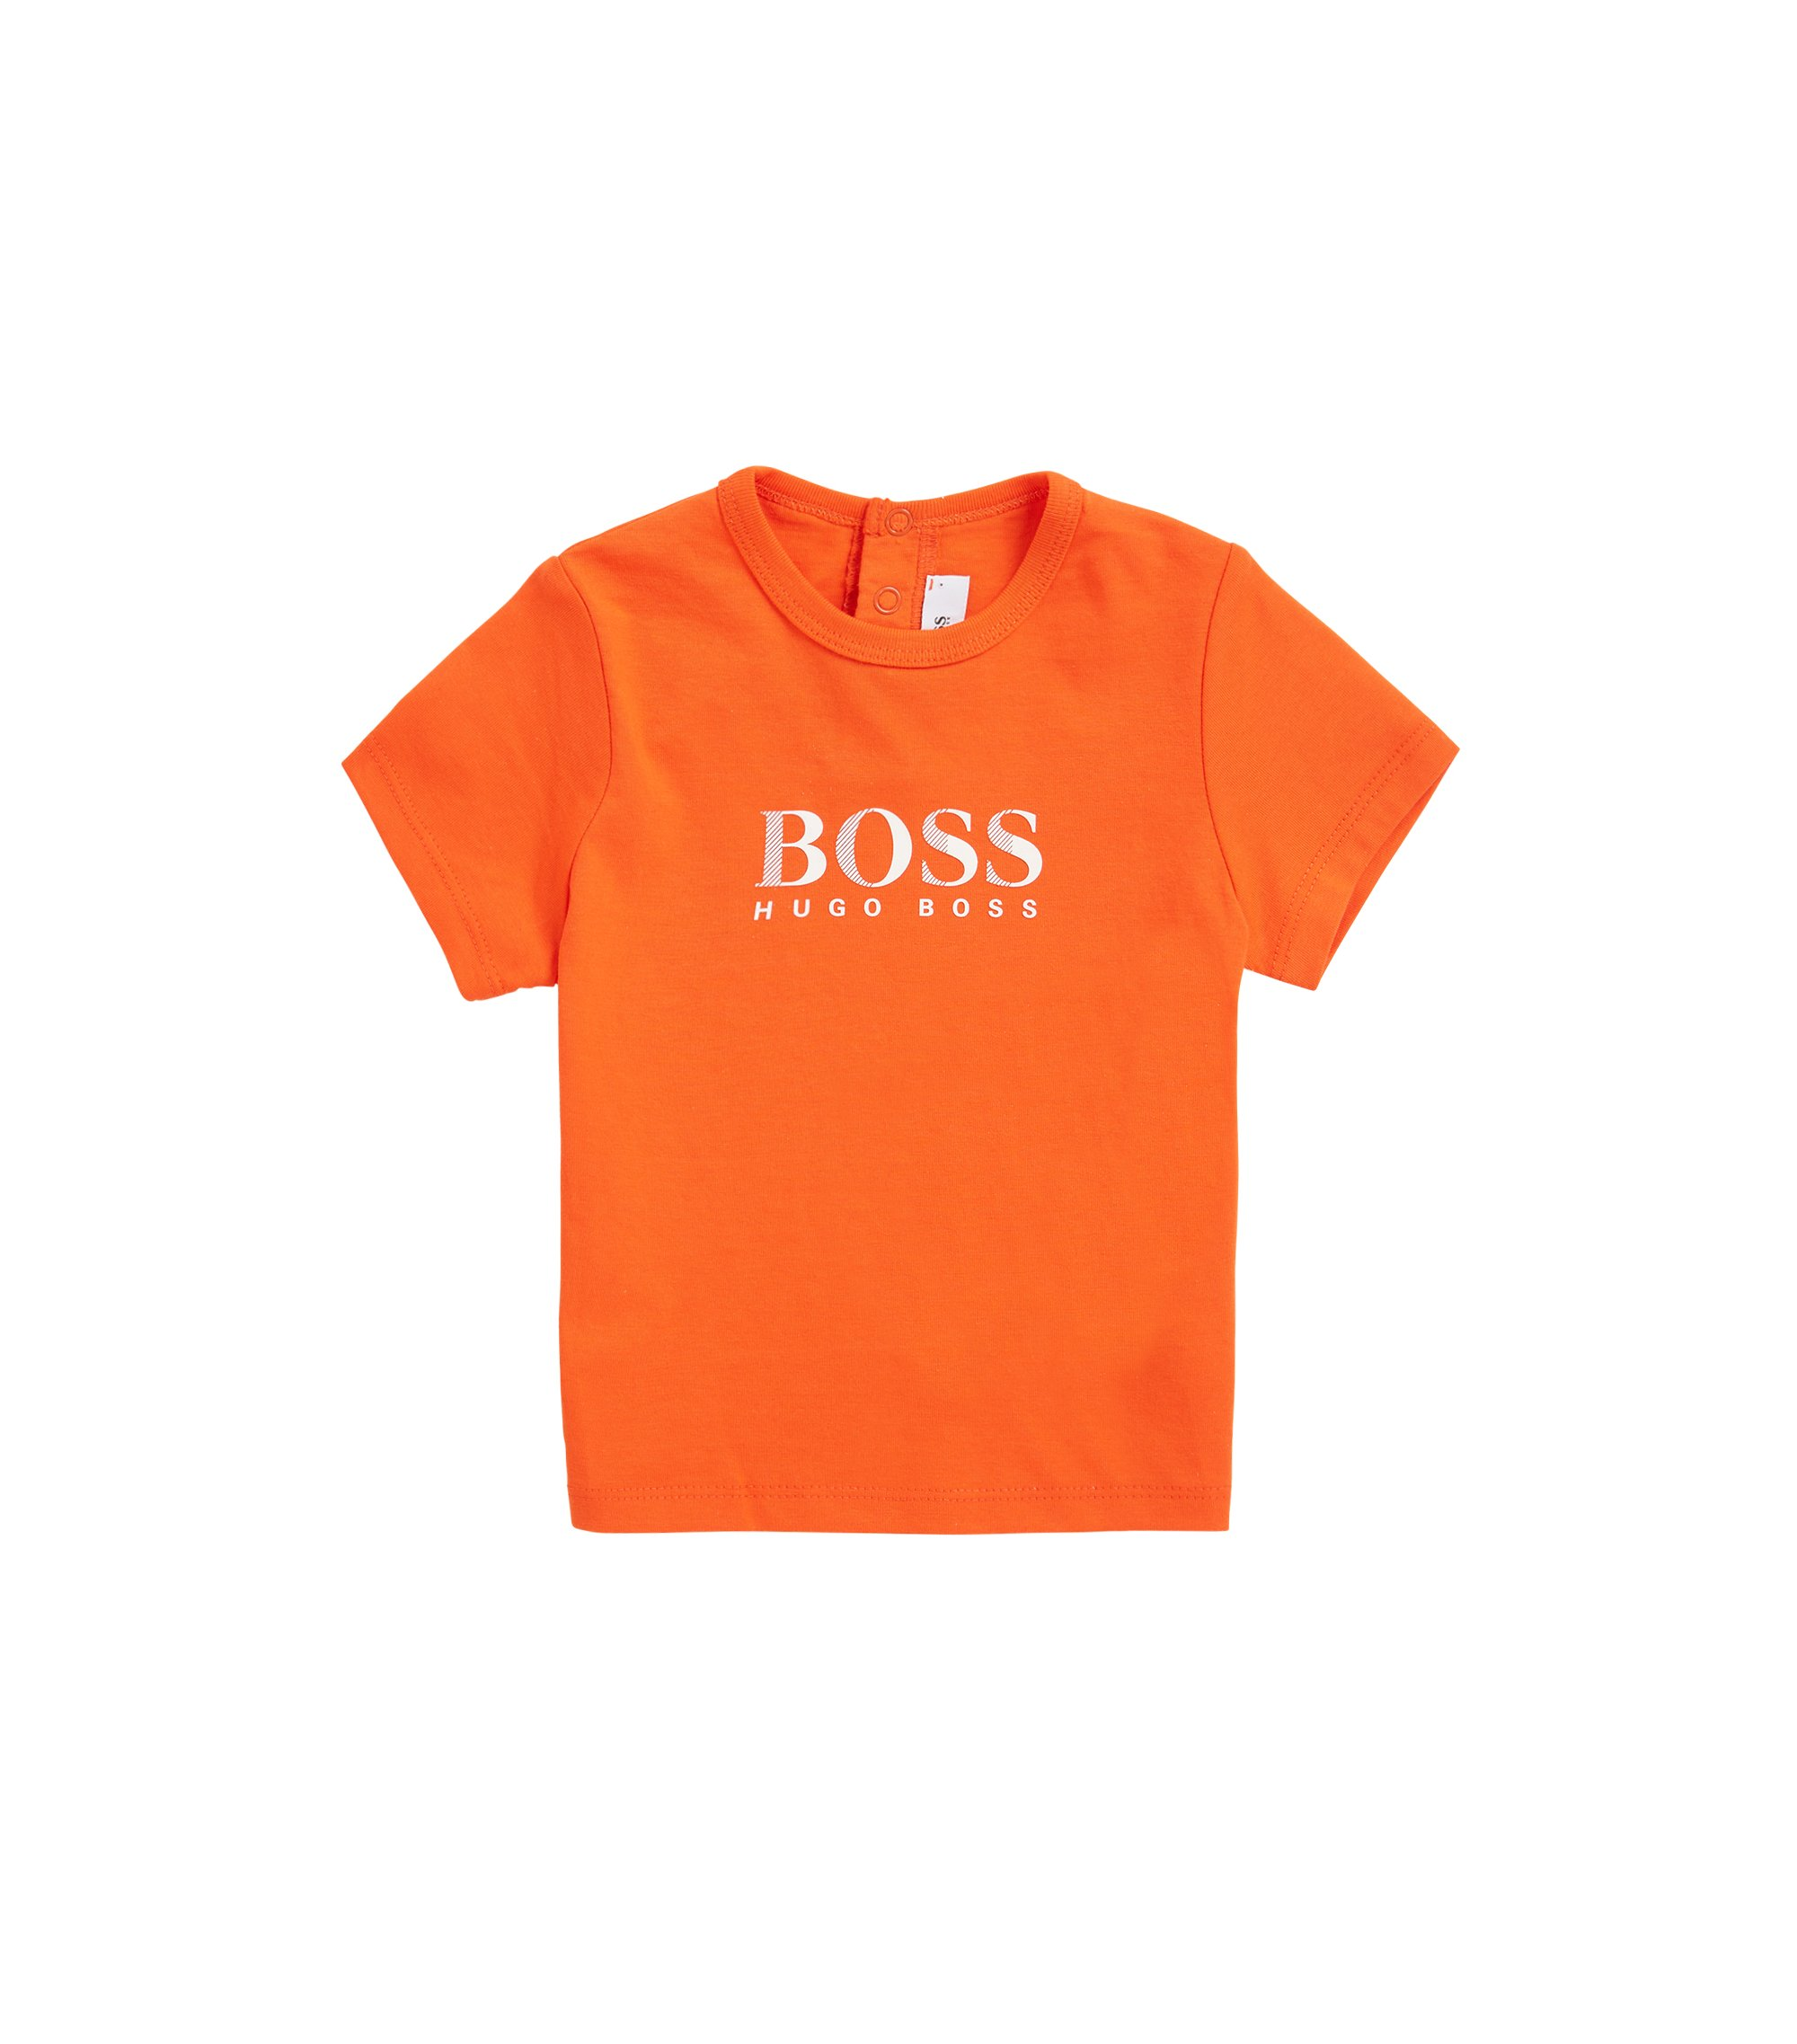 Kids-T-Shirt aus Single Jersey mit Logo-Print, Orange